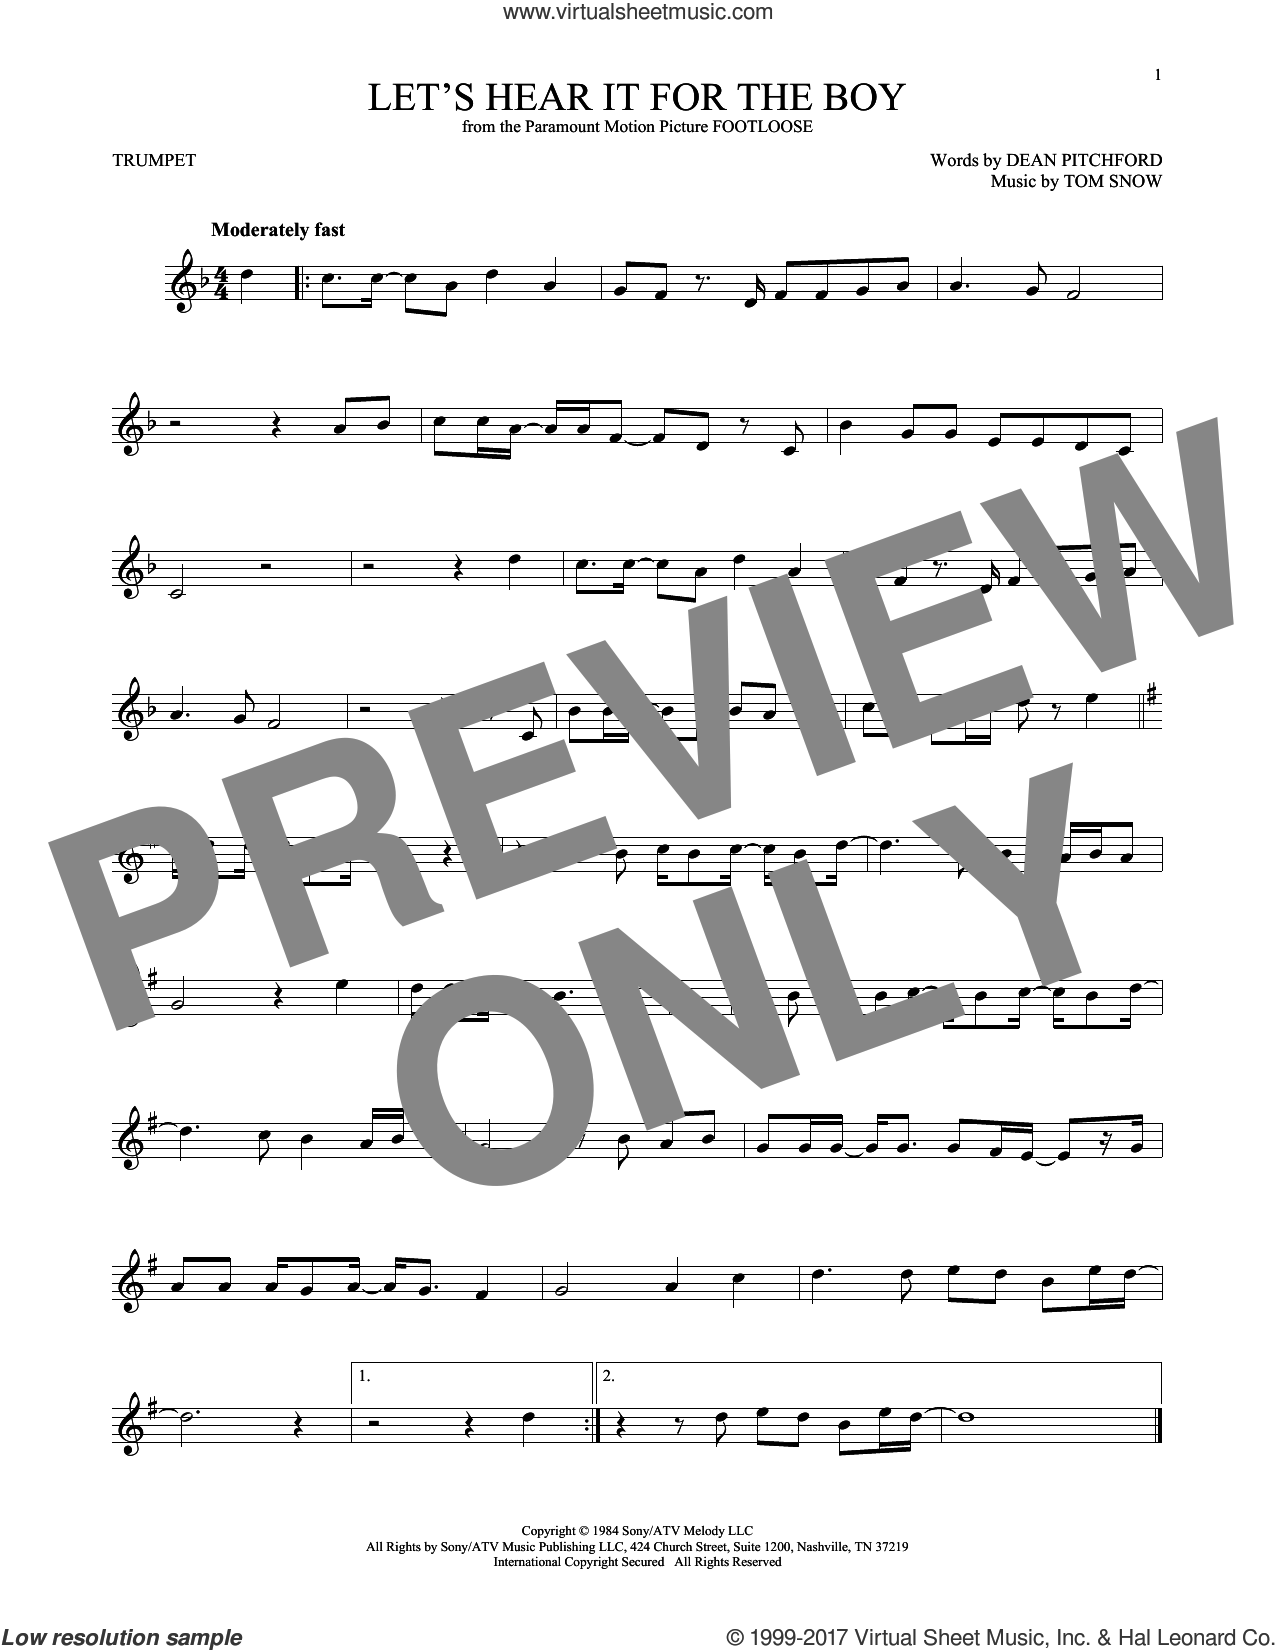 Let's Hear It For The Boy sheet music for trumpet solo by Deniece Williams, Dean Pitchford and Tom Snow, intermediate trumpet. Score Image Preview.